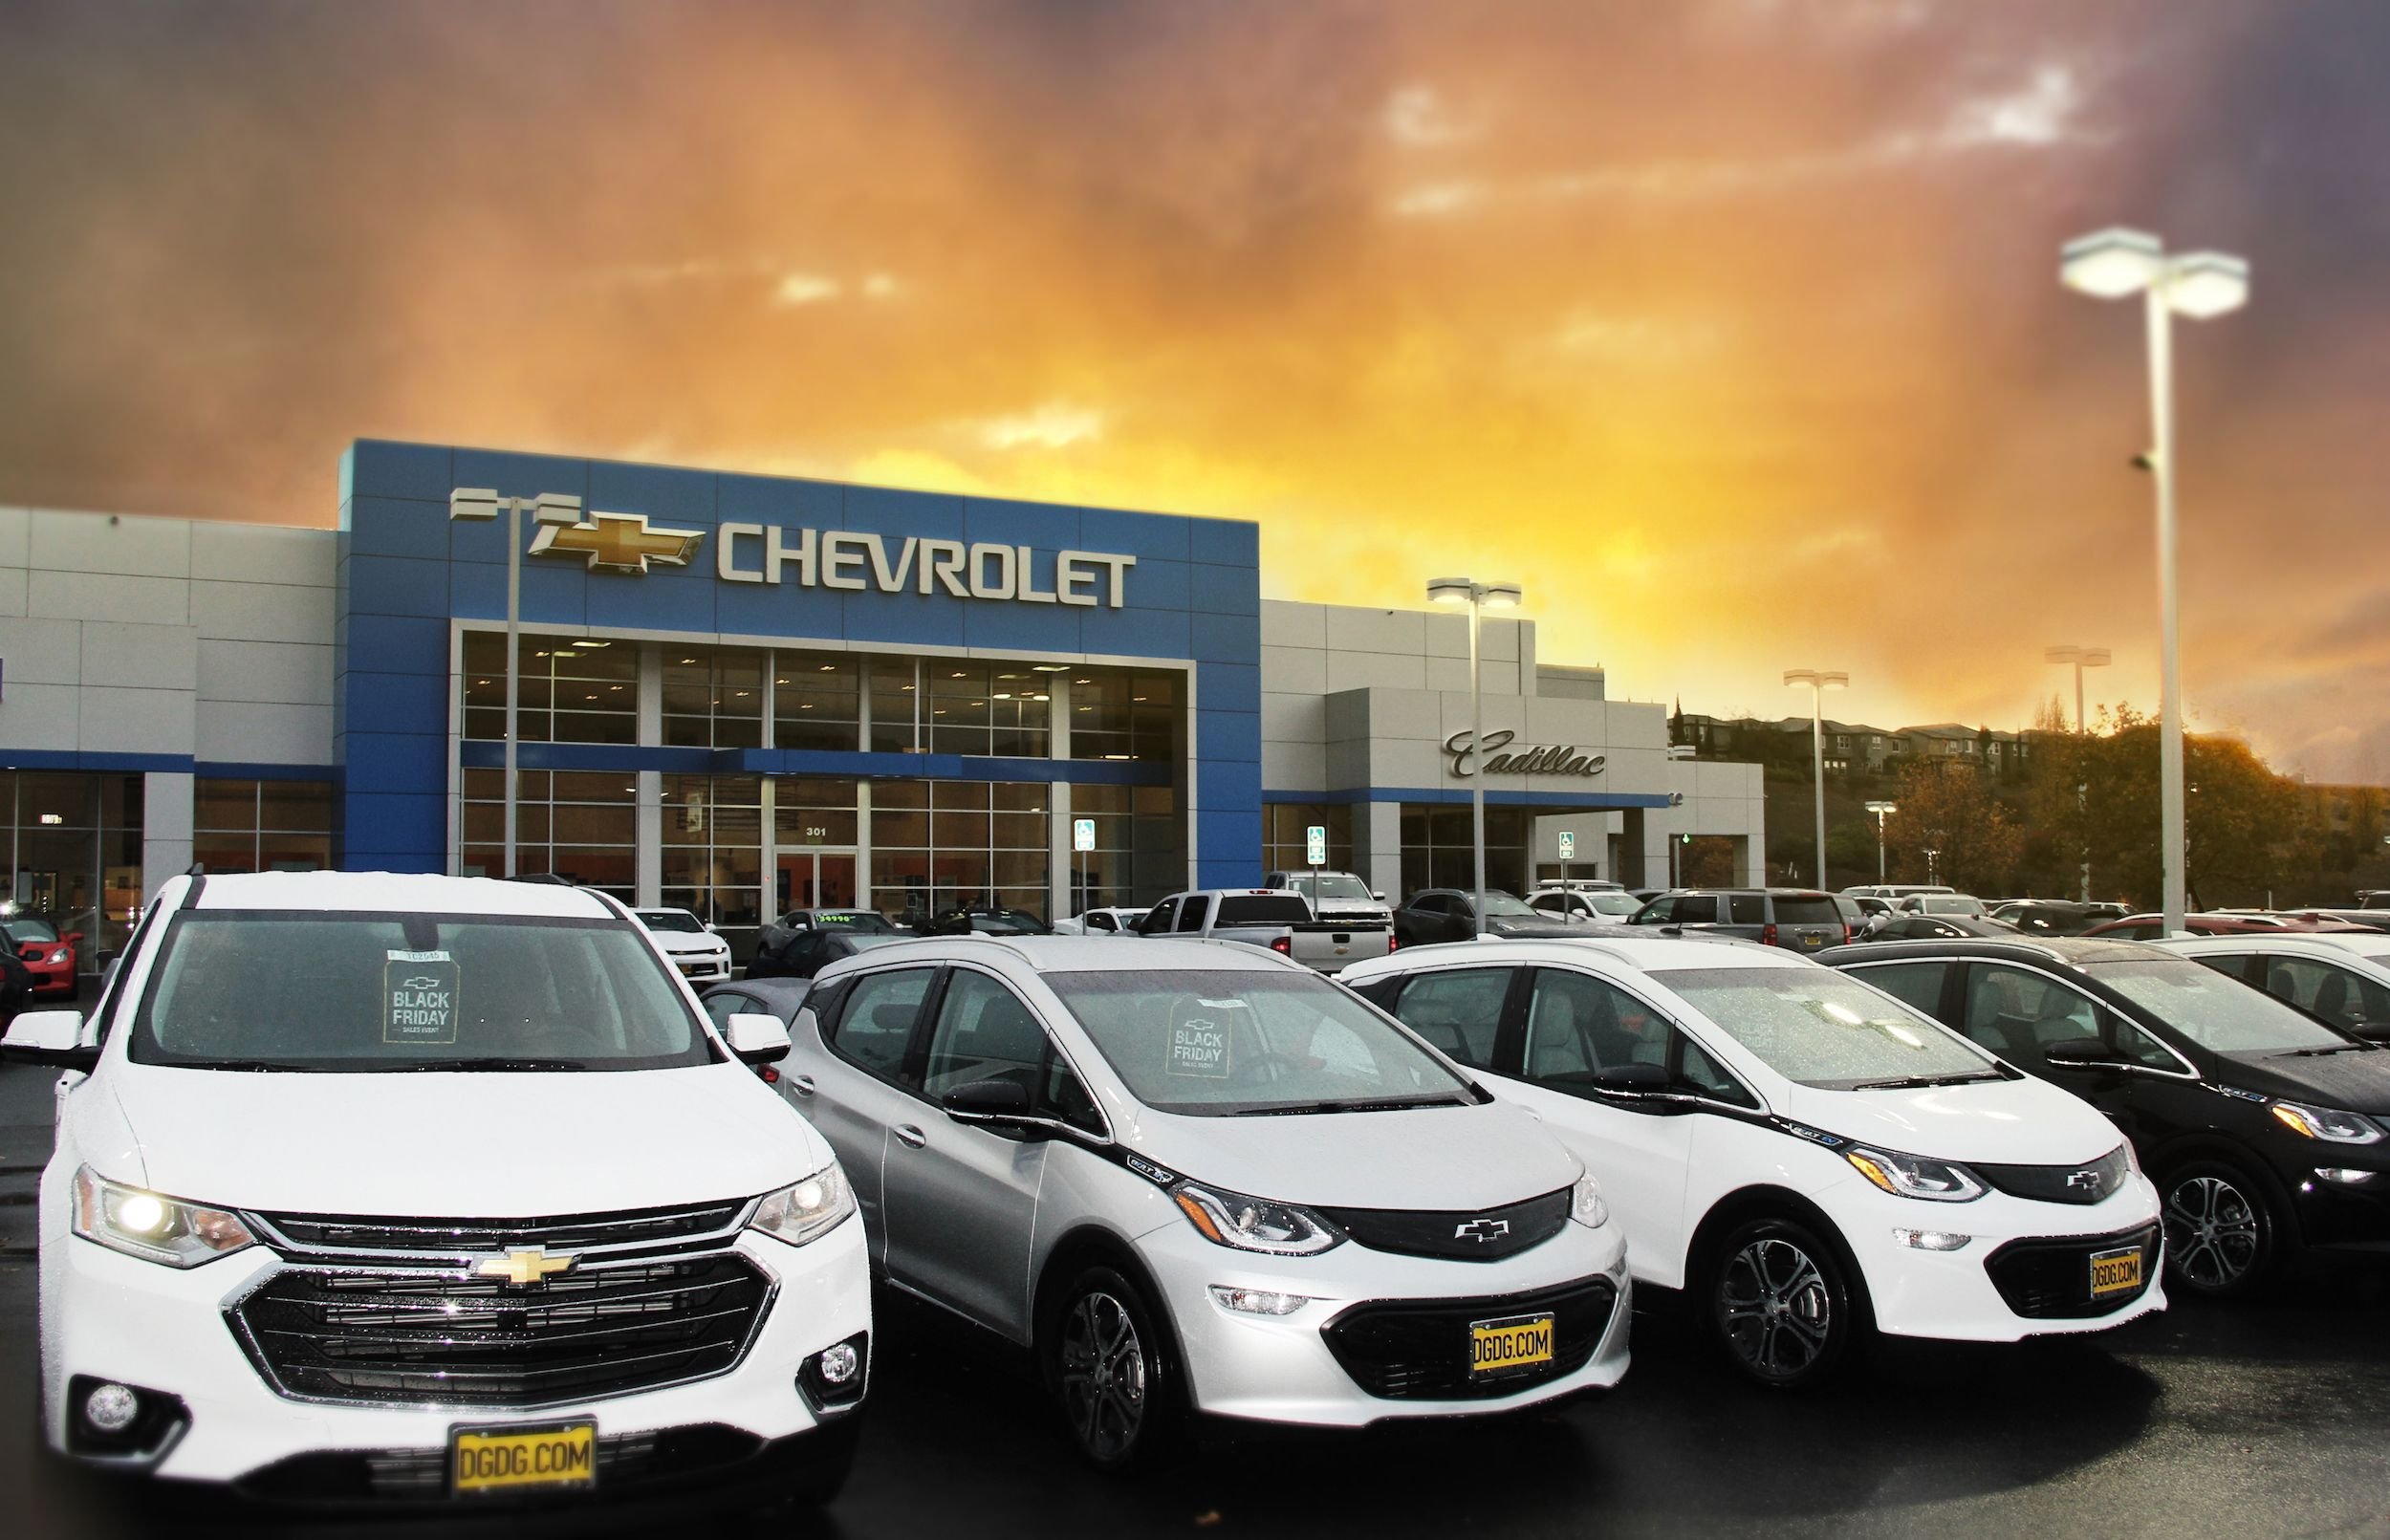 Teamchevyvallejo Chevy Dealers Chevrolet Chevy